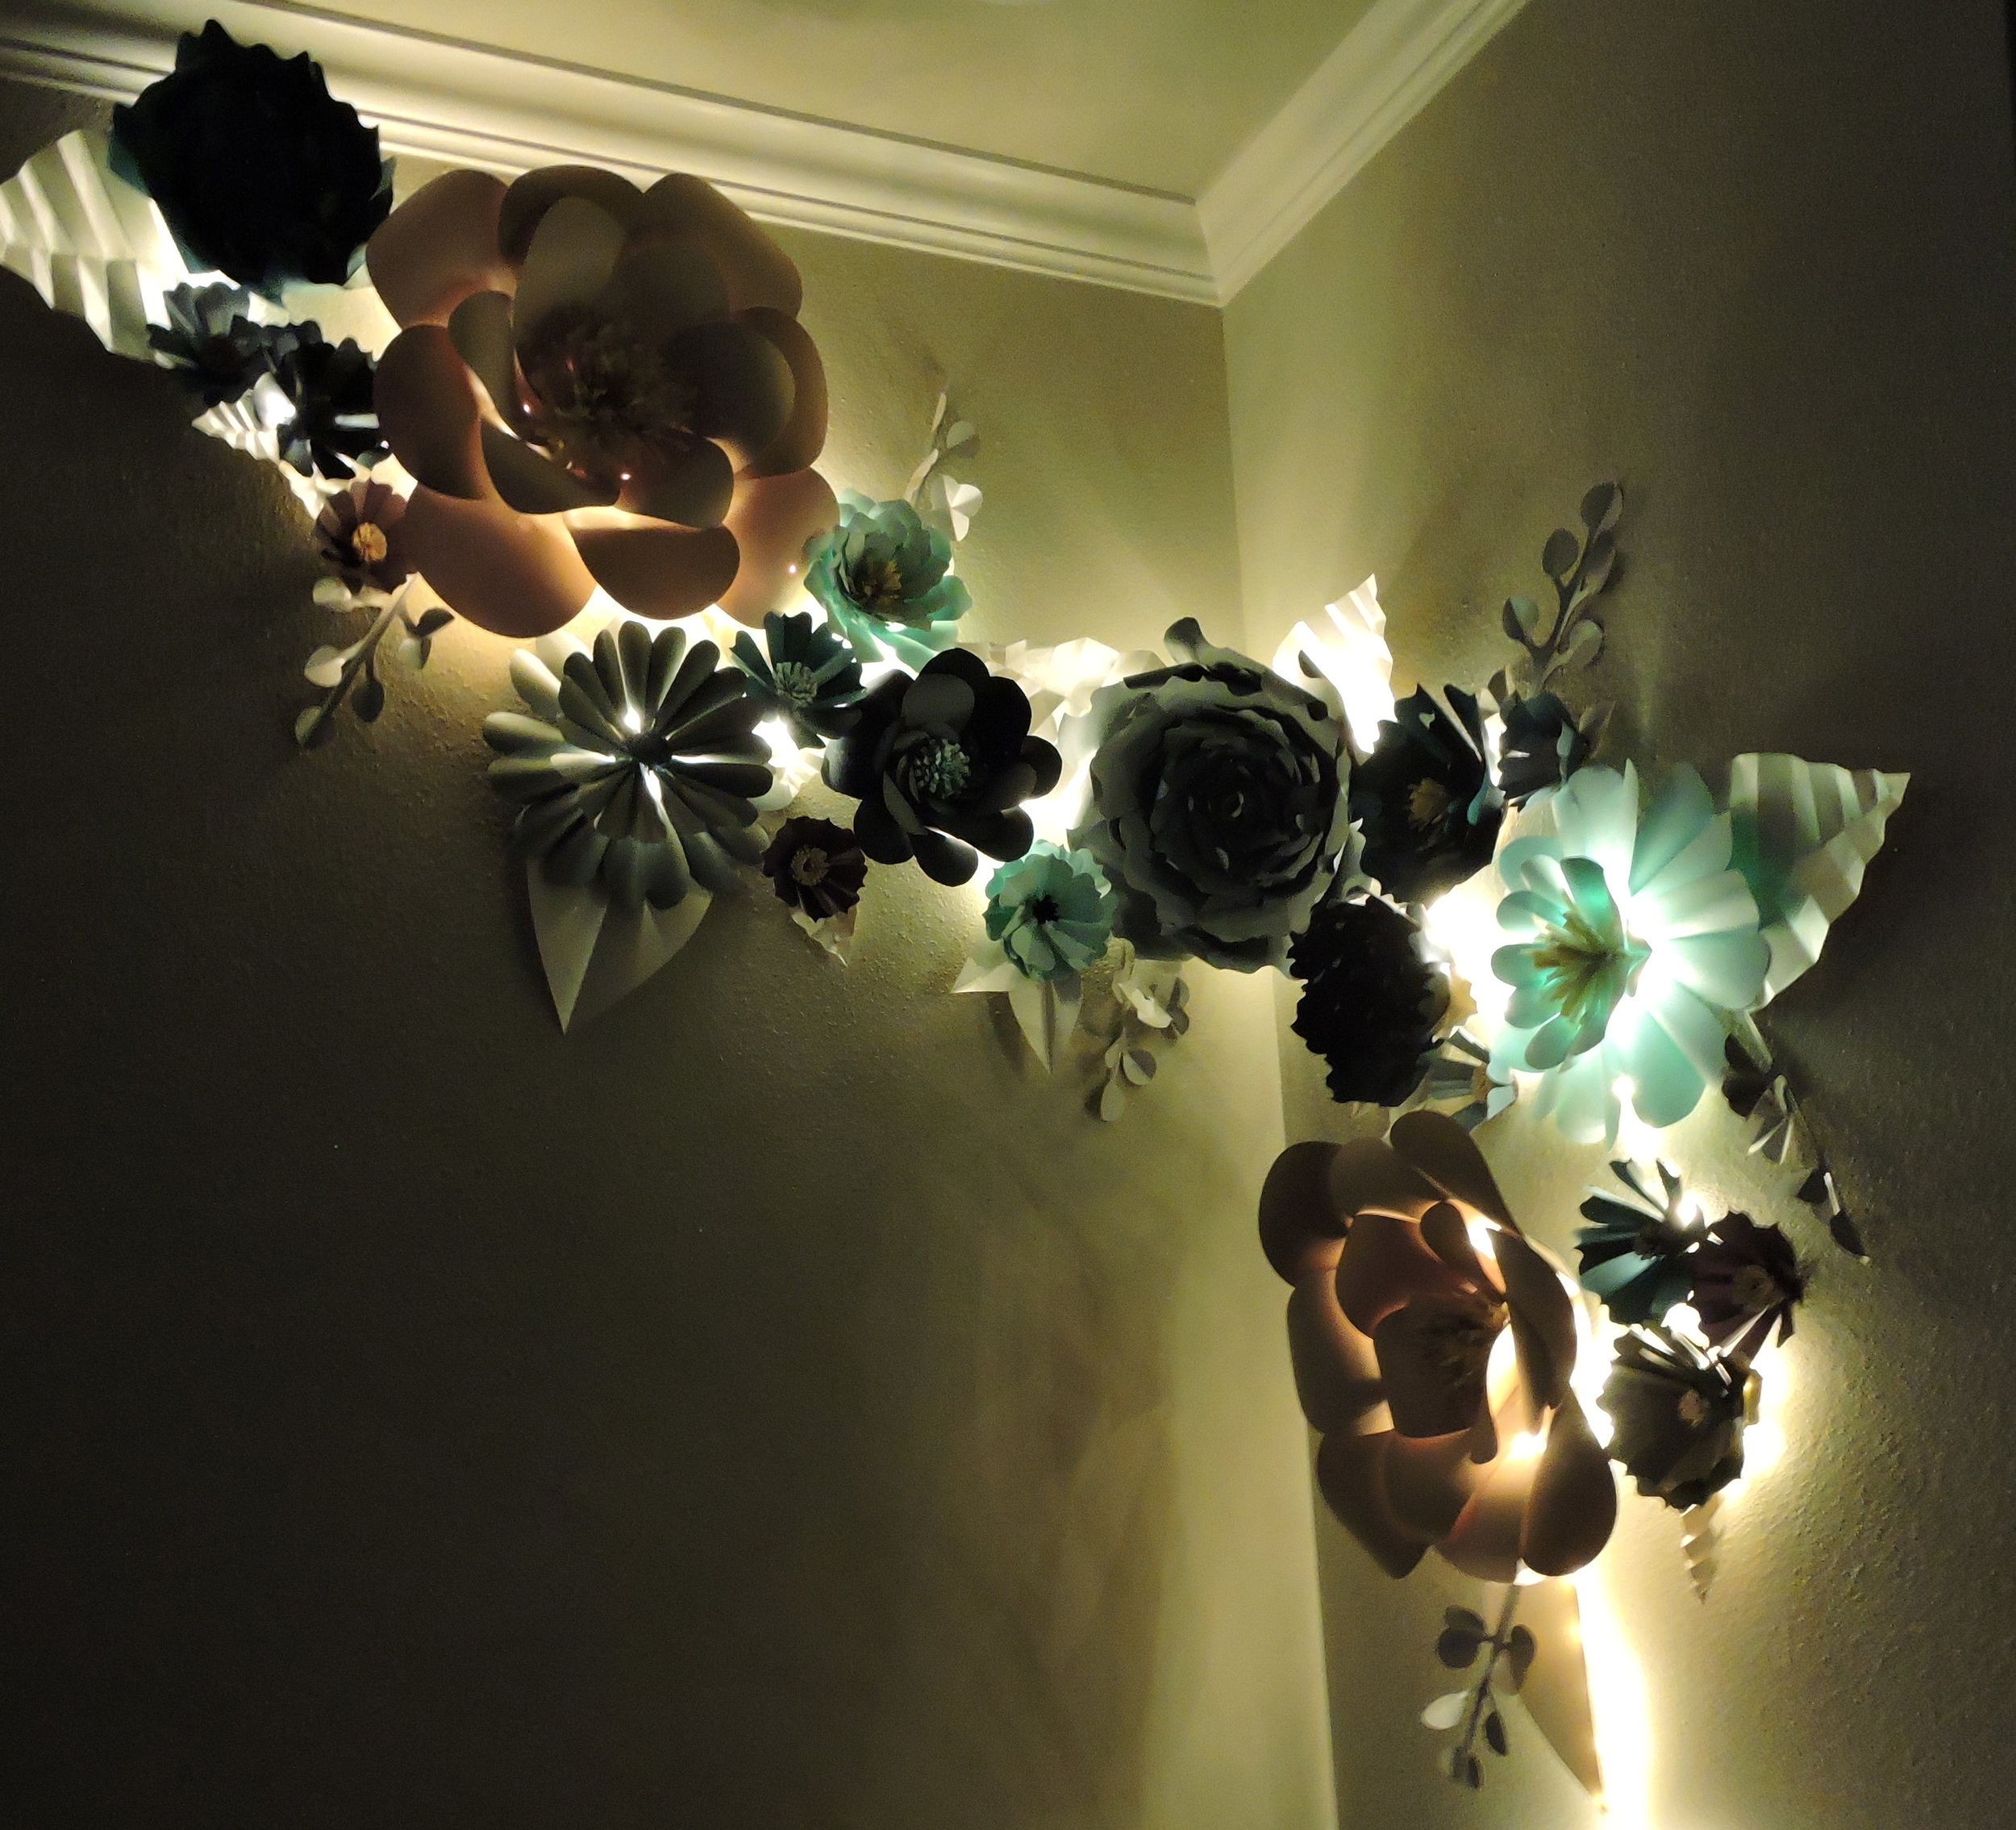 Giant Paper Flowers at night time, by Blue Fox Crafts 2017